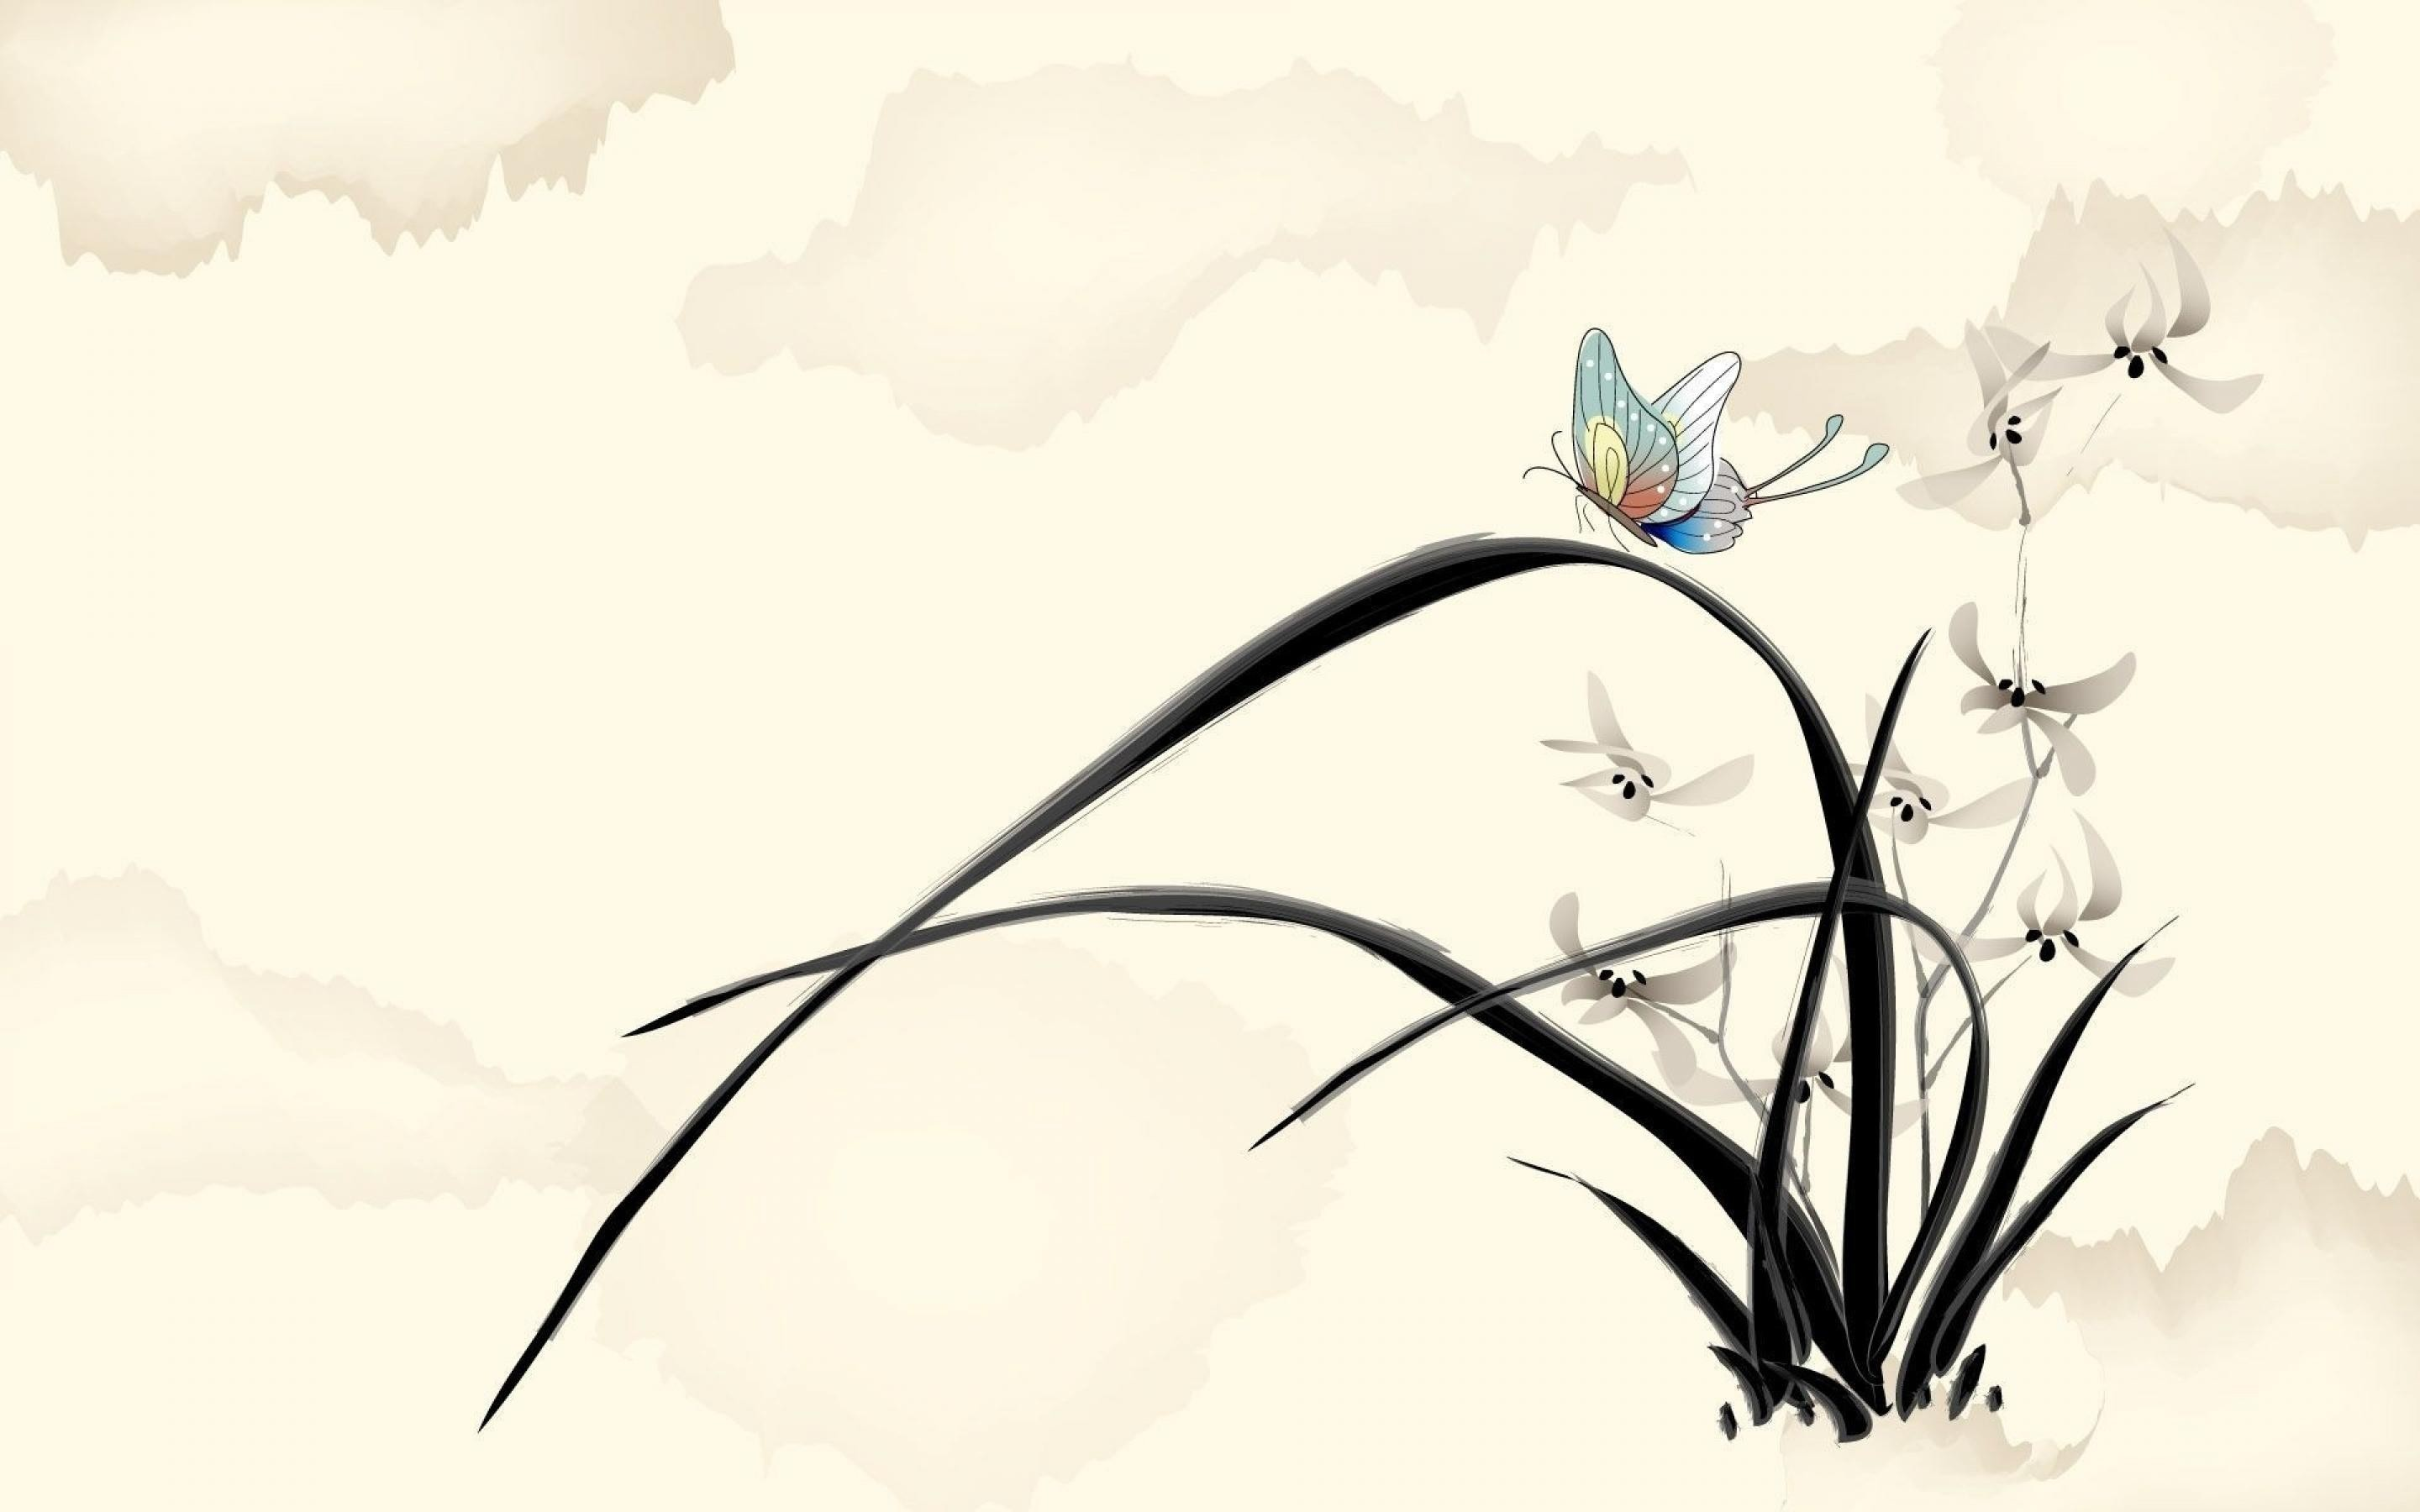 Res: 2880x1800, fascinating white drawing abstract butterfly wallpaper hd mac apple  colourful amazing cool desktop wallpapers free 4k